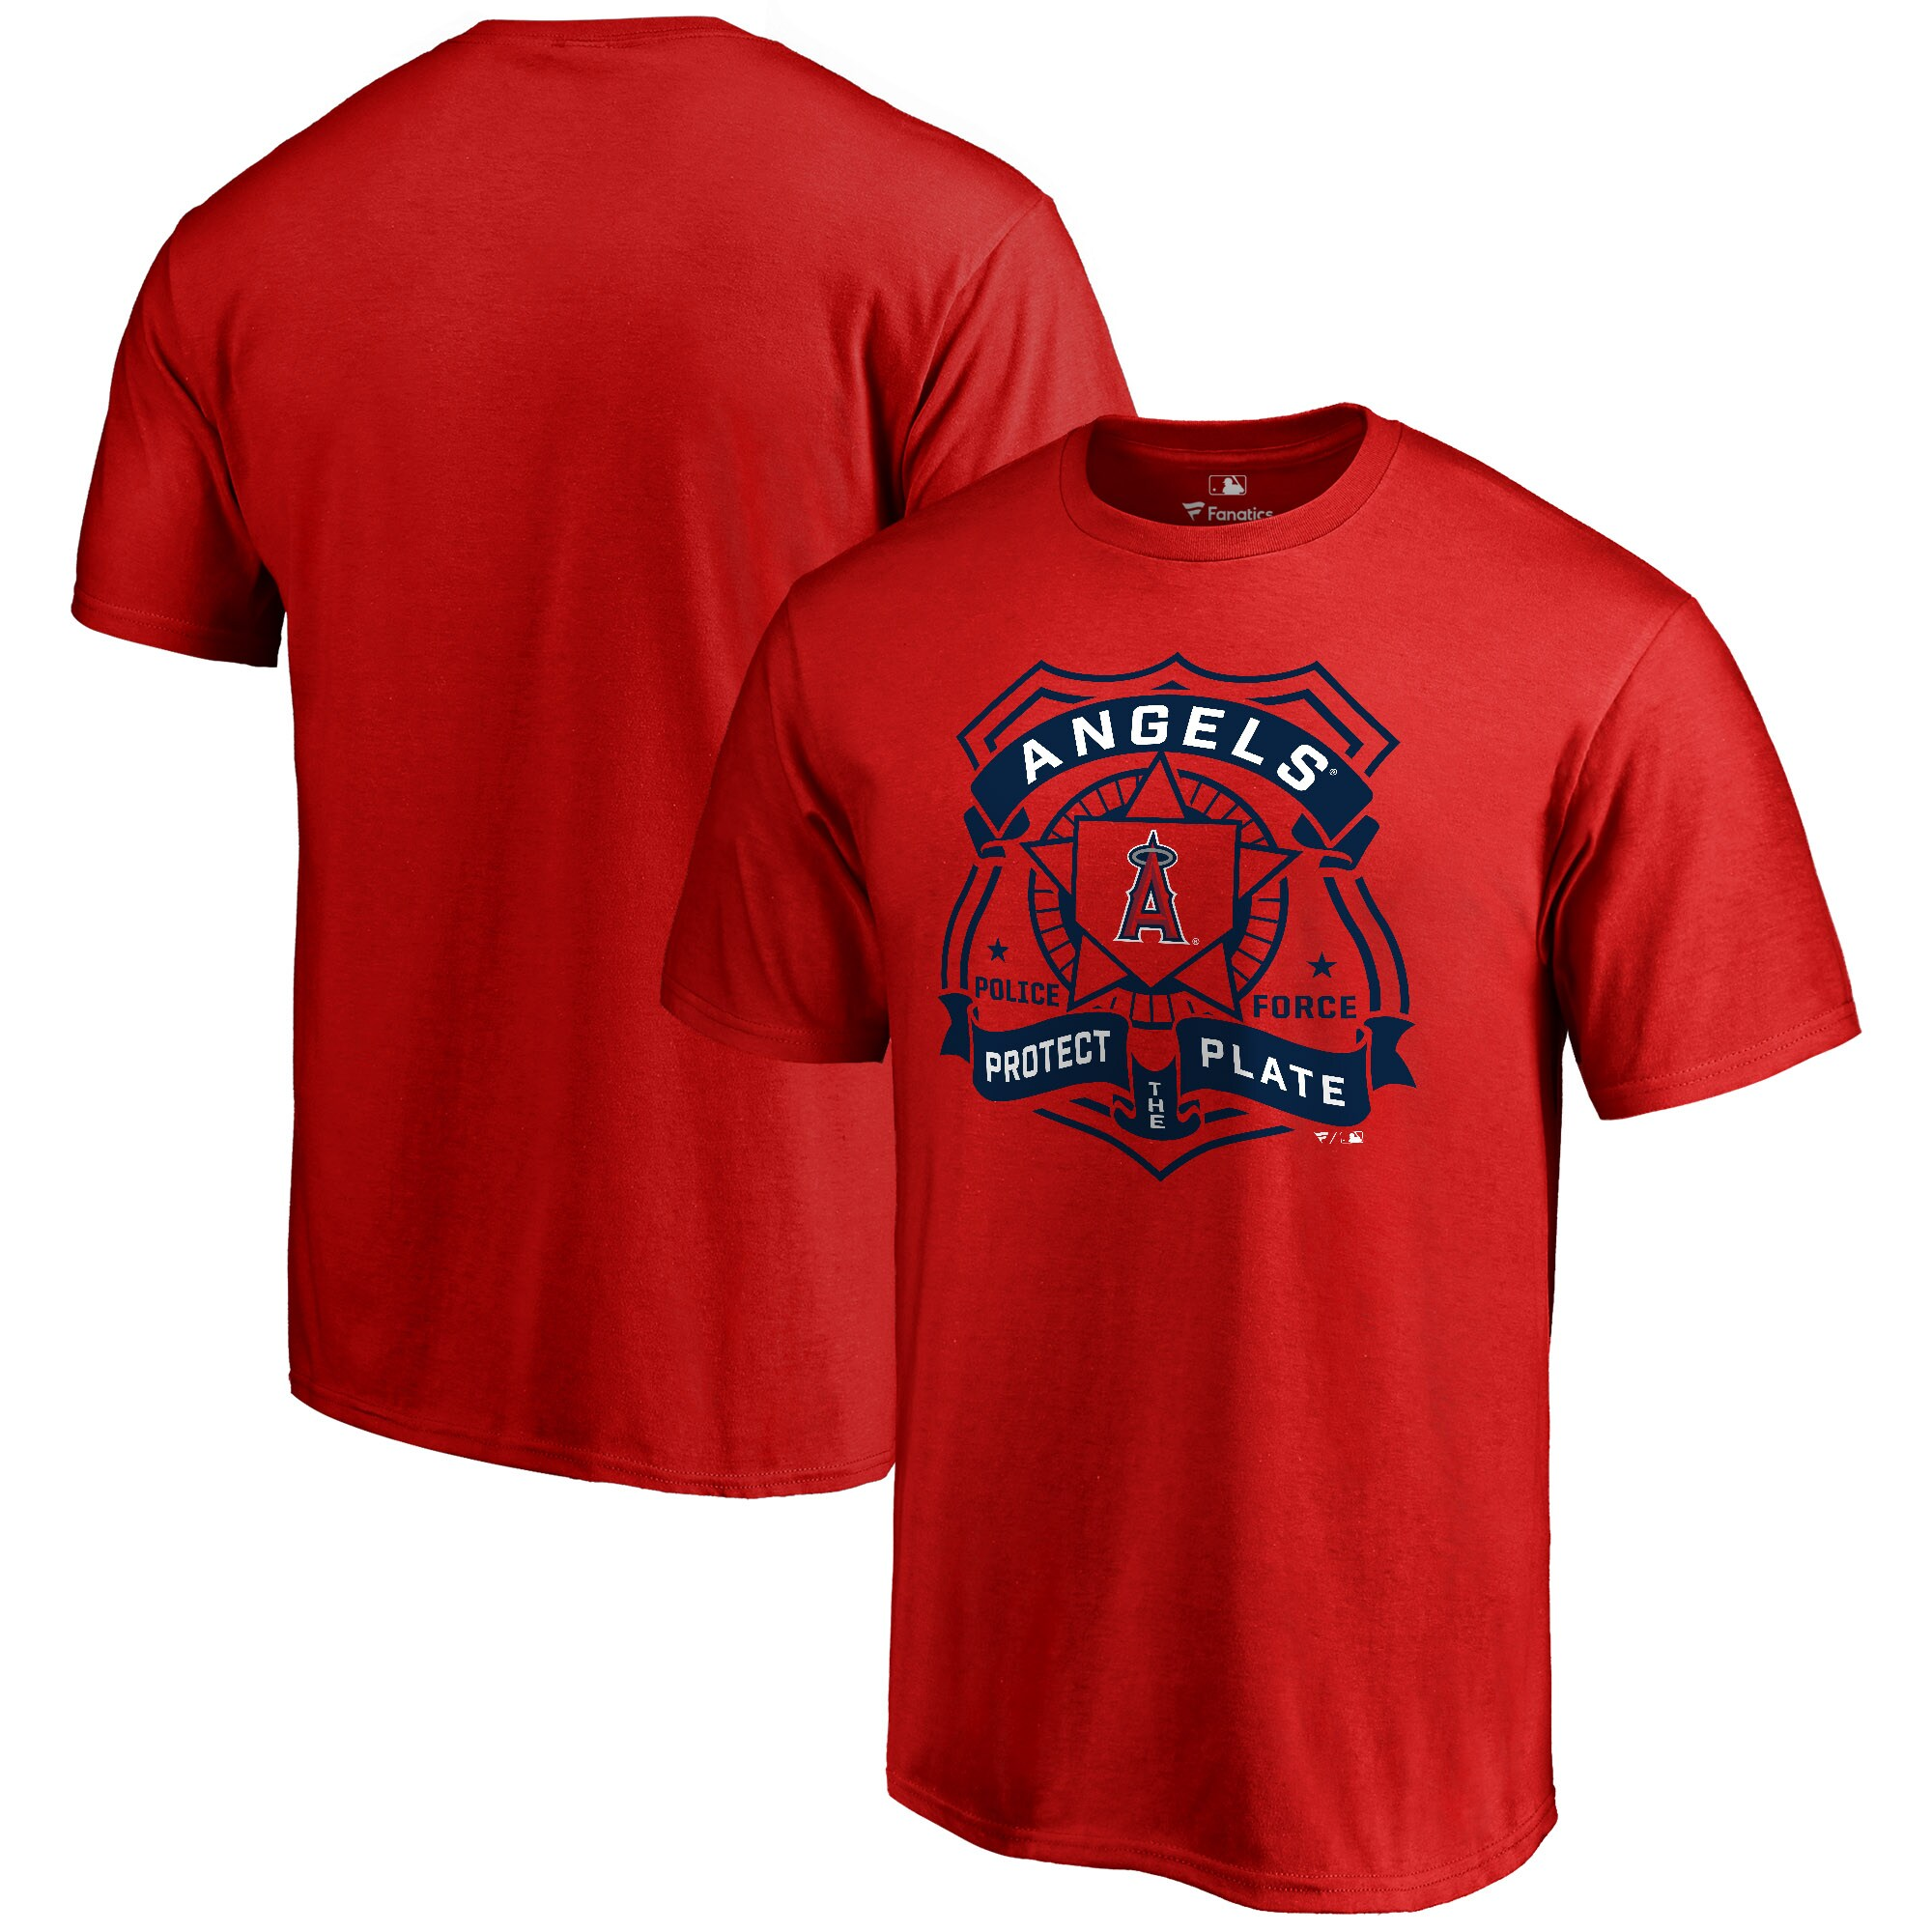 Los Angeles Angels Police Badge T-Shirt - Red